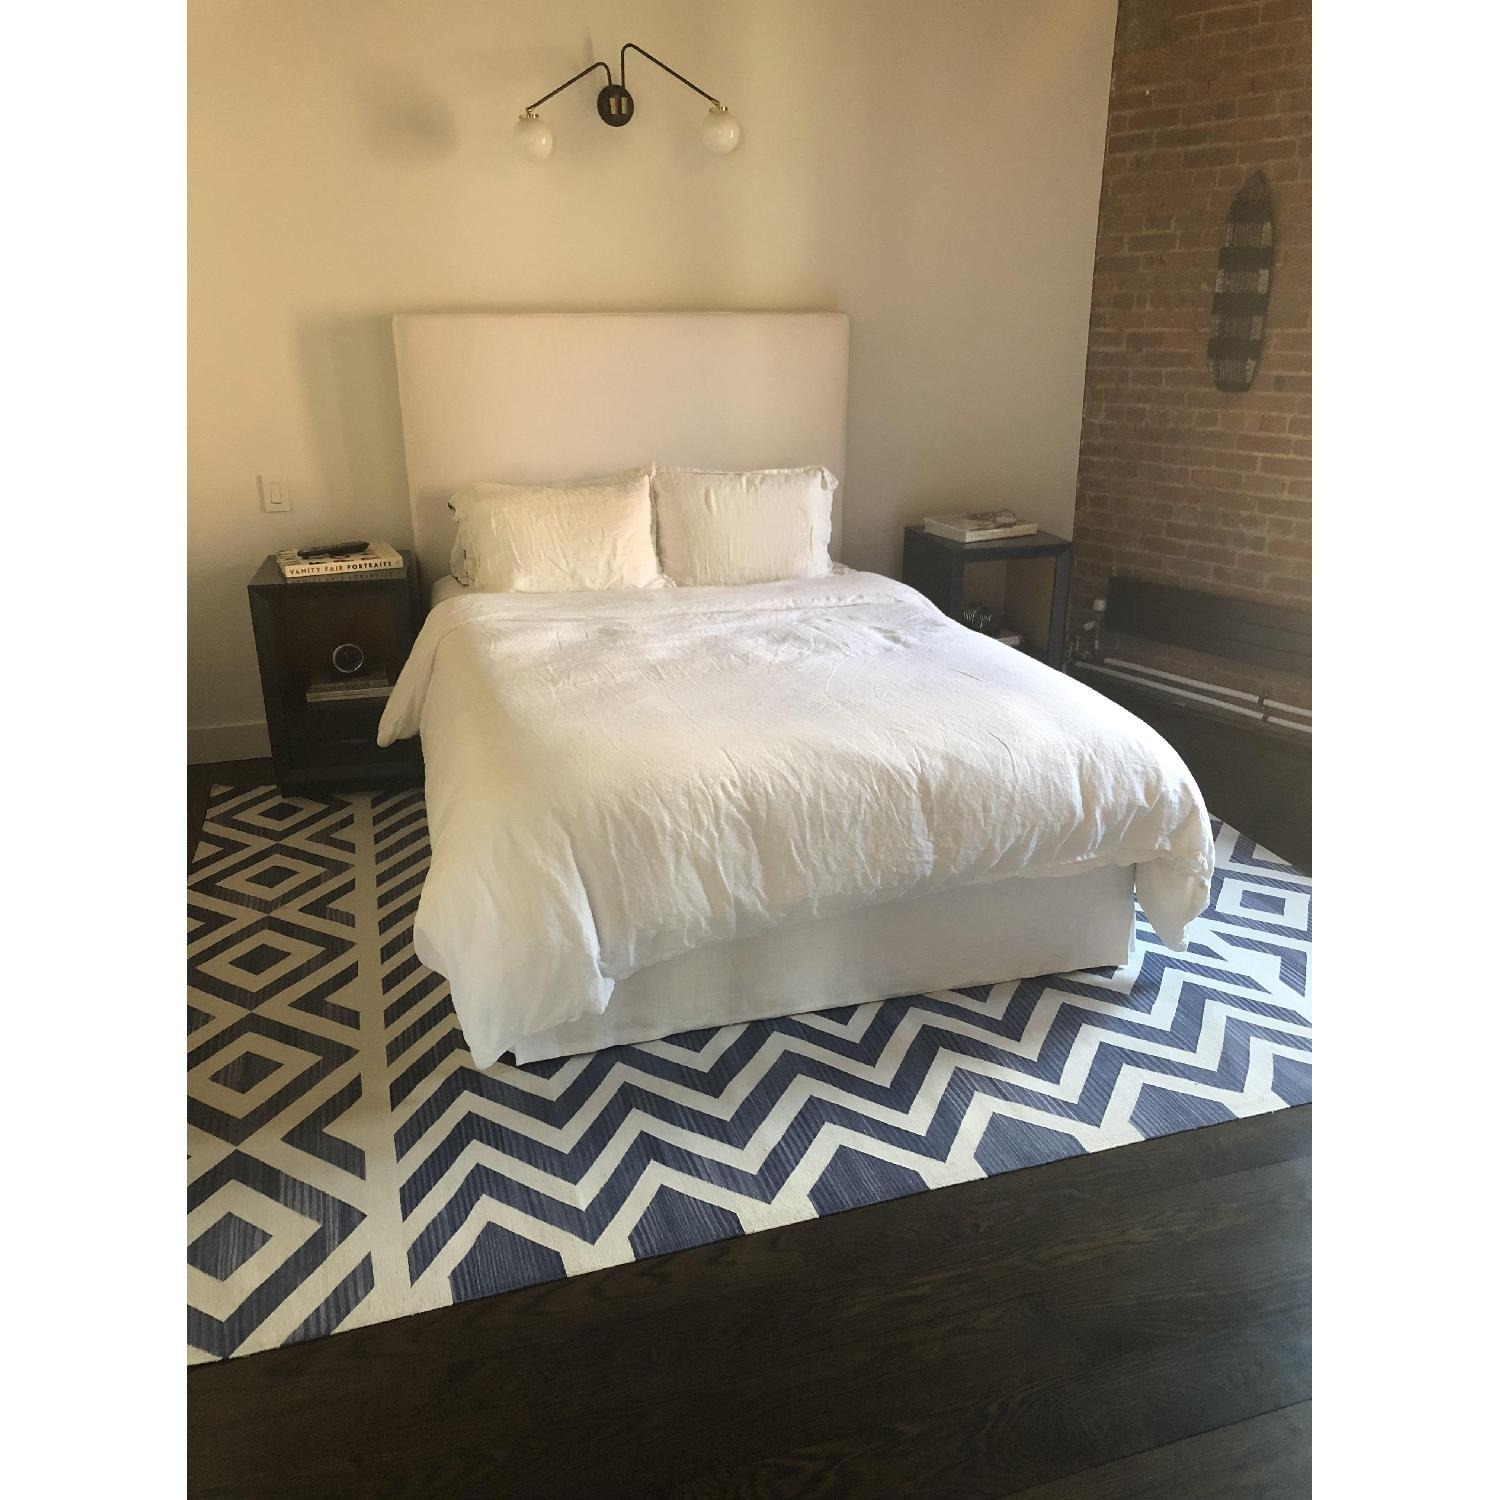 Restoration Hardware Slipcovered Queen Bed - image-1